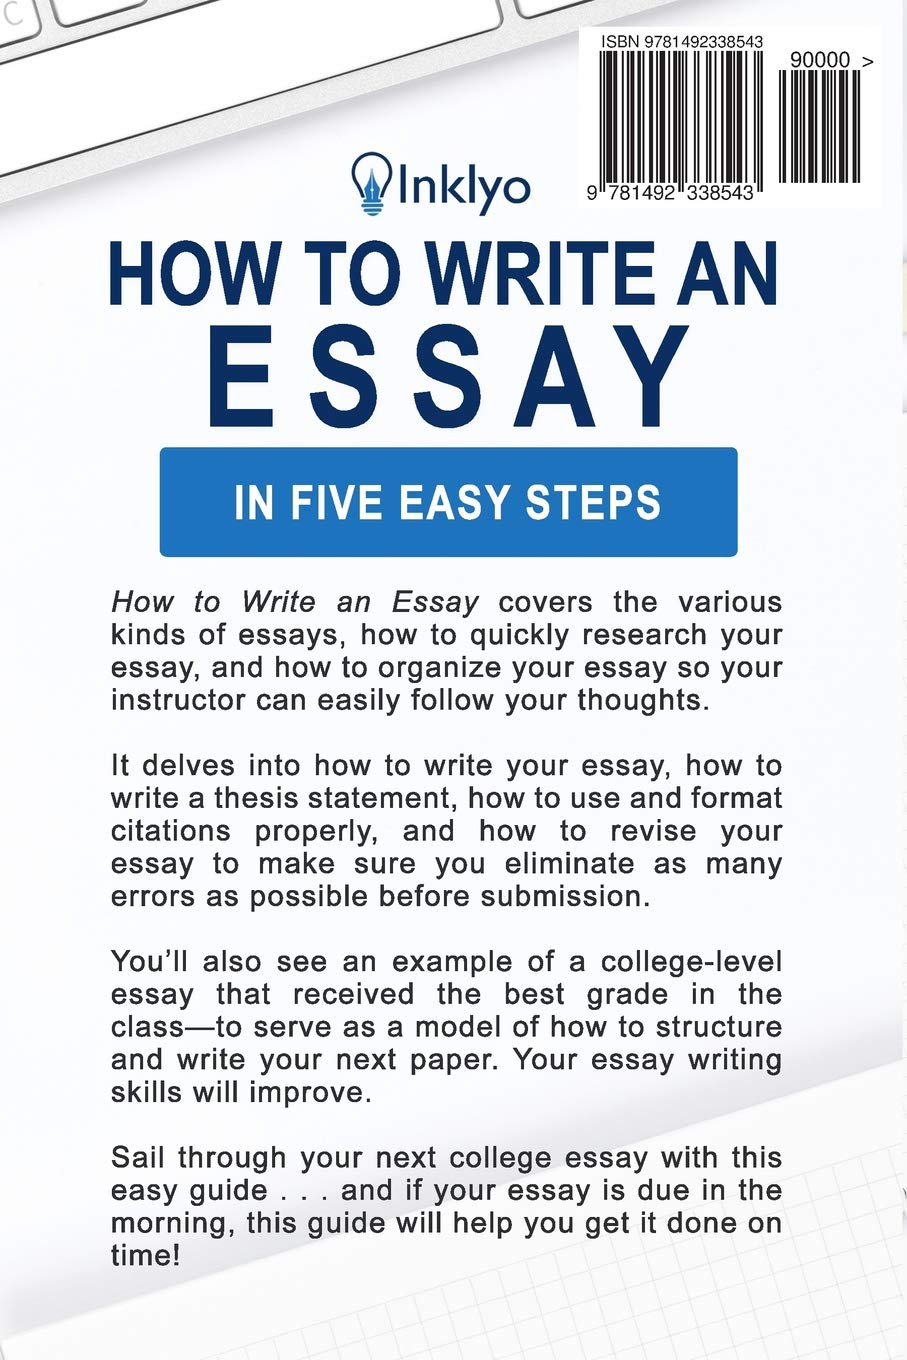 how to write an essay in five easy steps scribendi   how to write an essay in five easy steps scribendi   amazoncom books